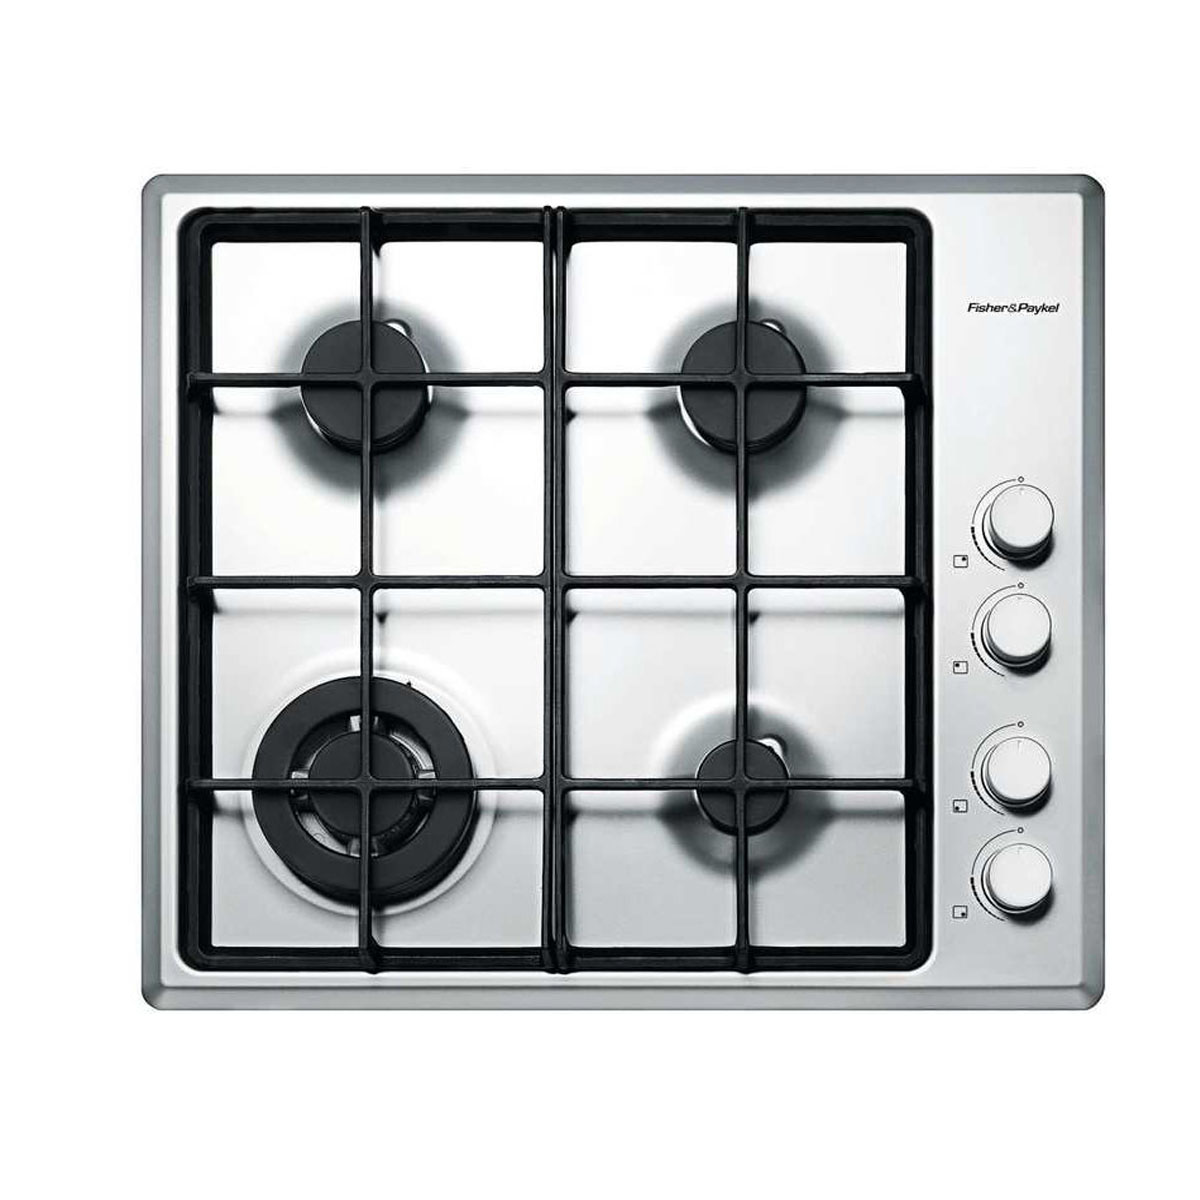 Fisher & Paykel CG604DWFCX1 Gas Cooktop